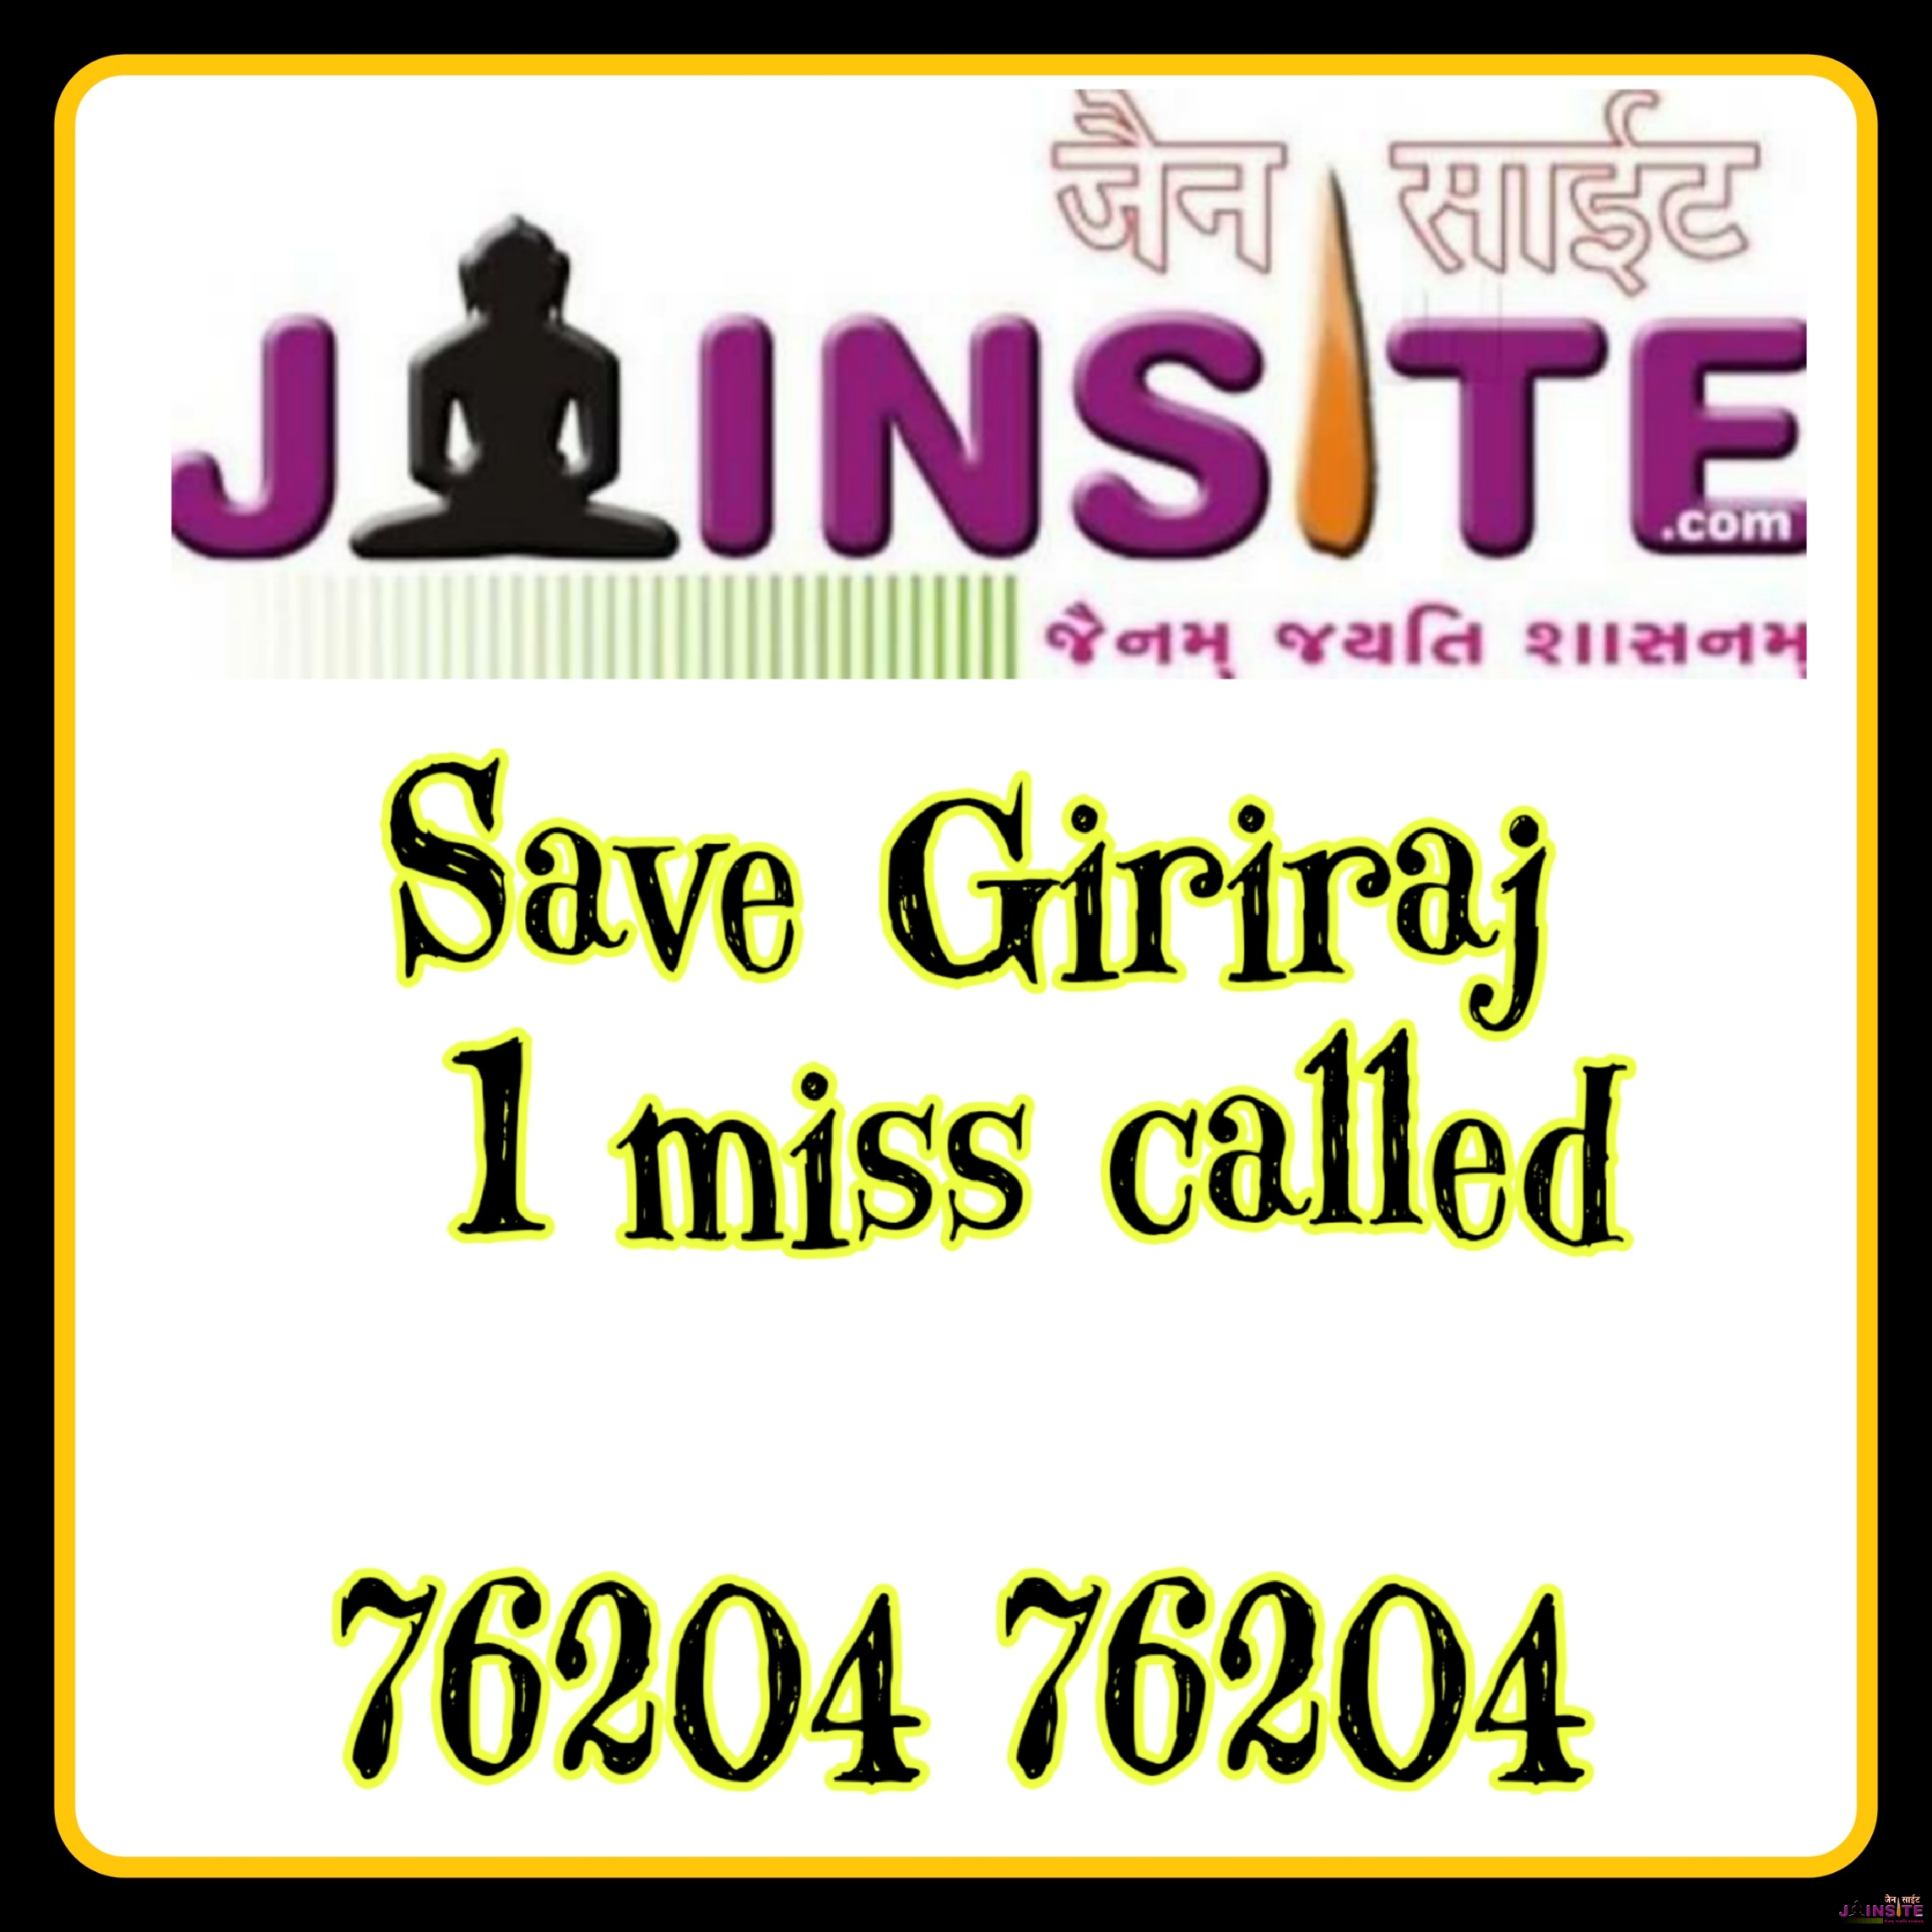 Don't miss this opportunity save Shatrunjay